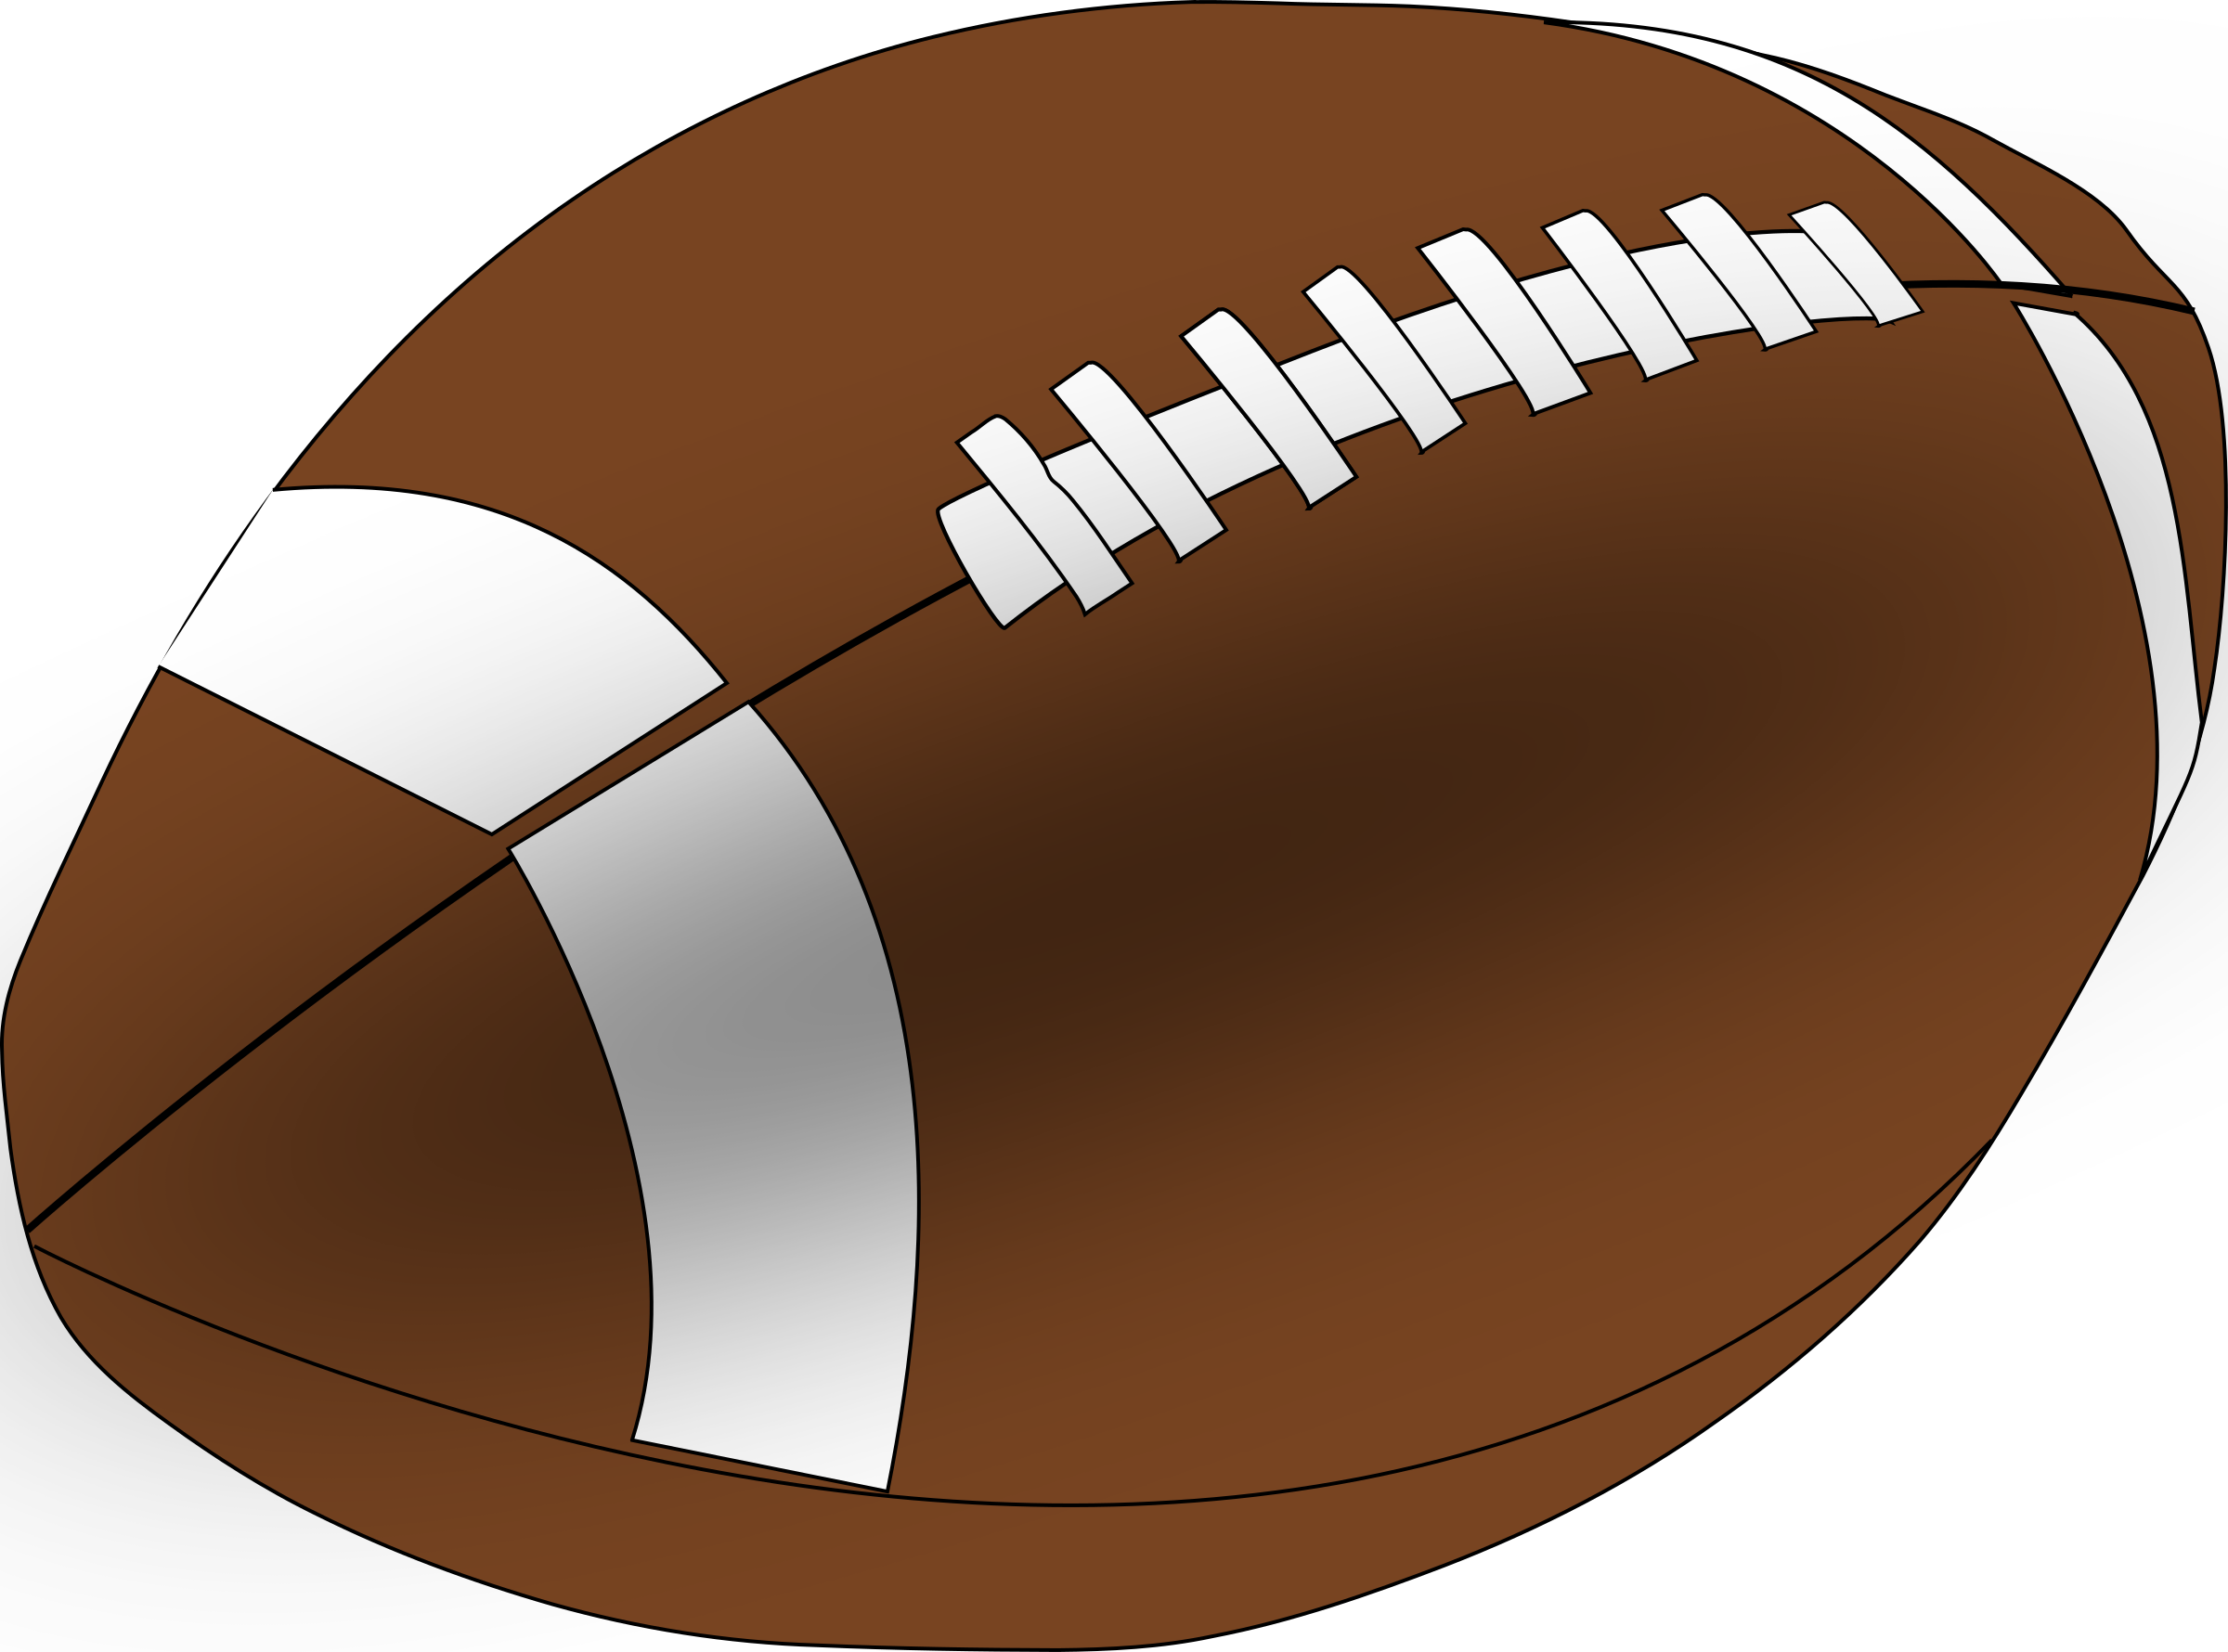 Football clipart free jpg library Clipart - American Football jpg library